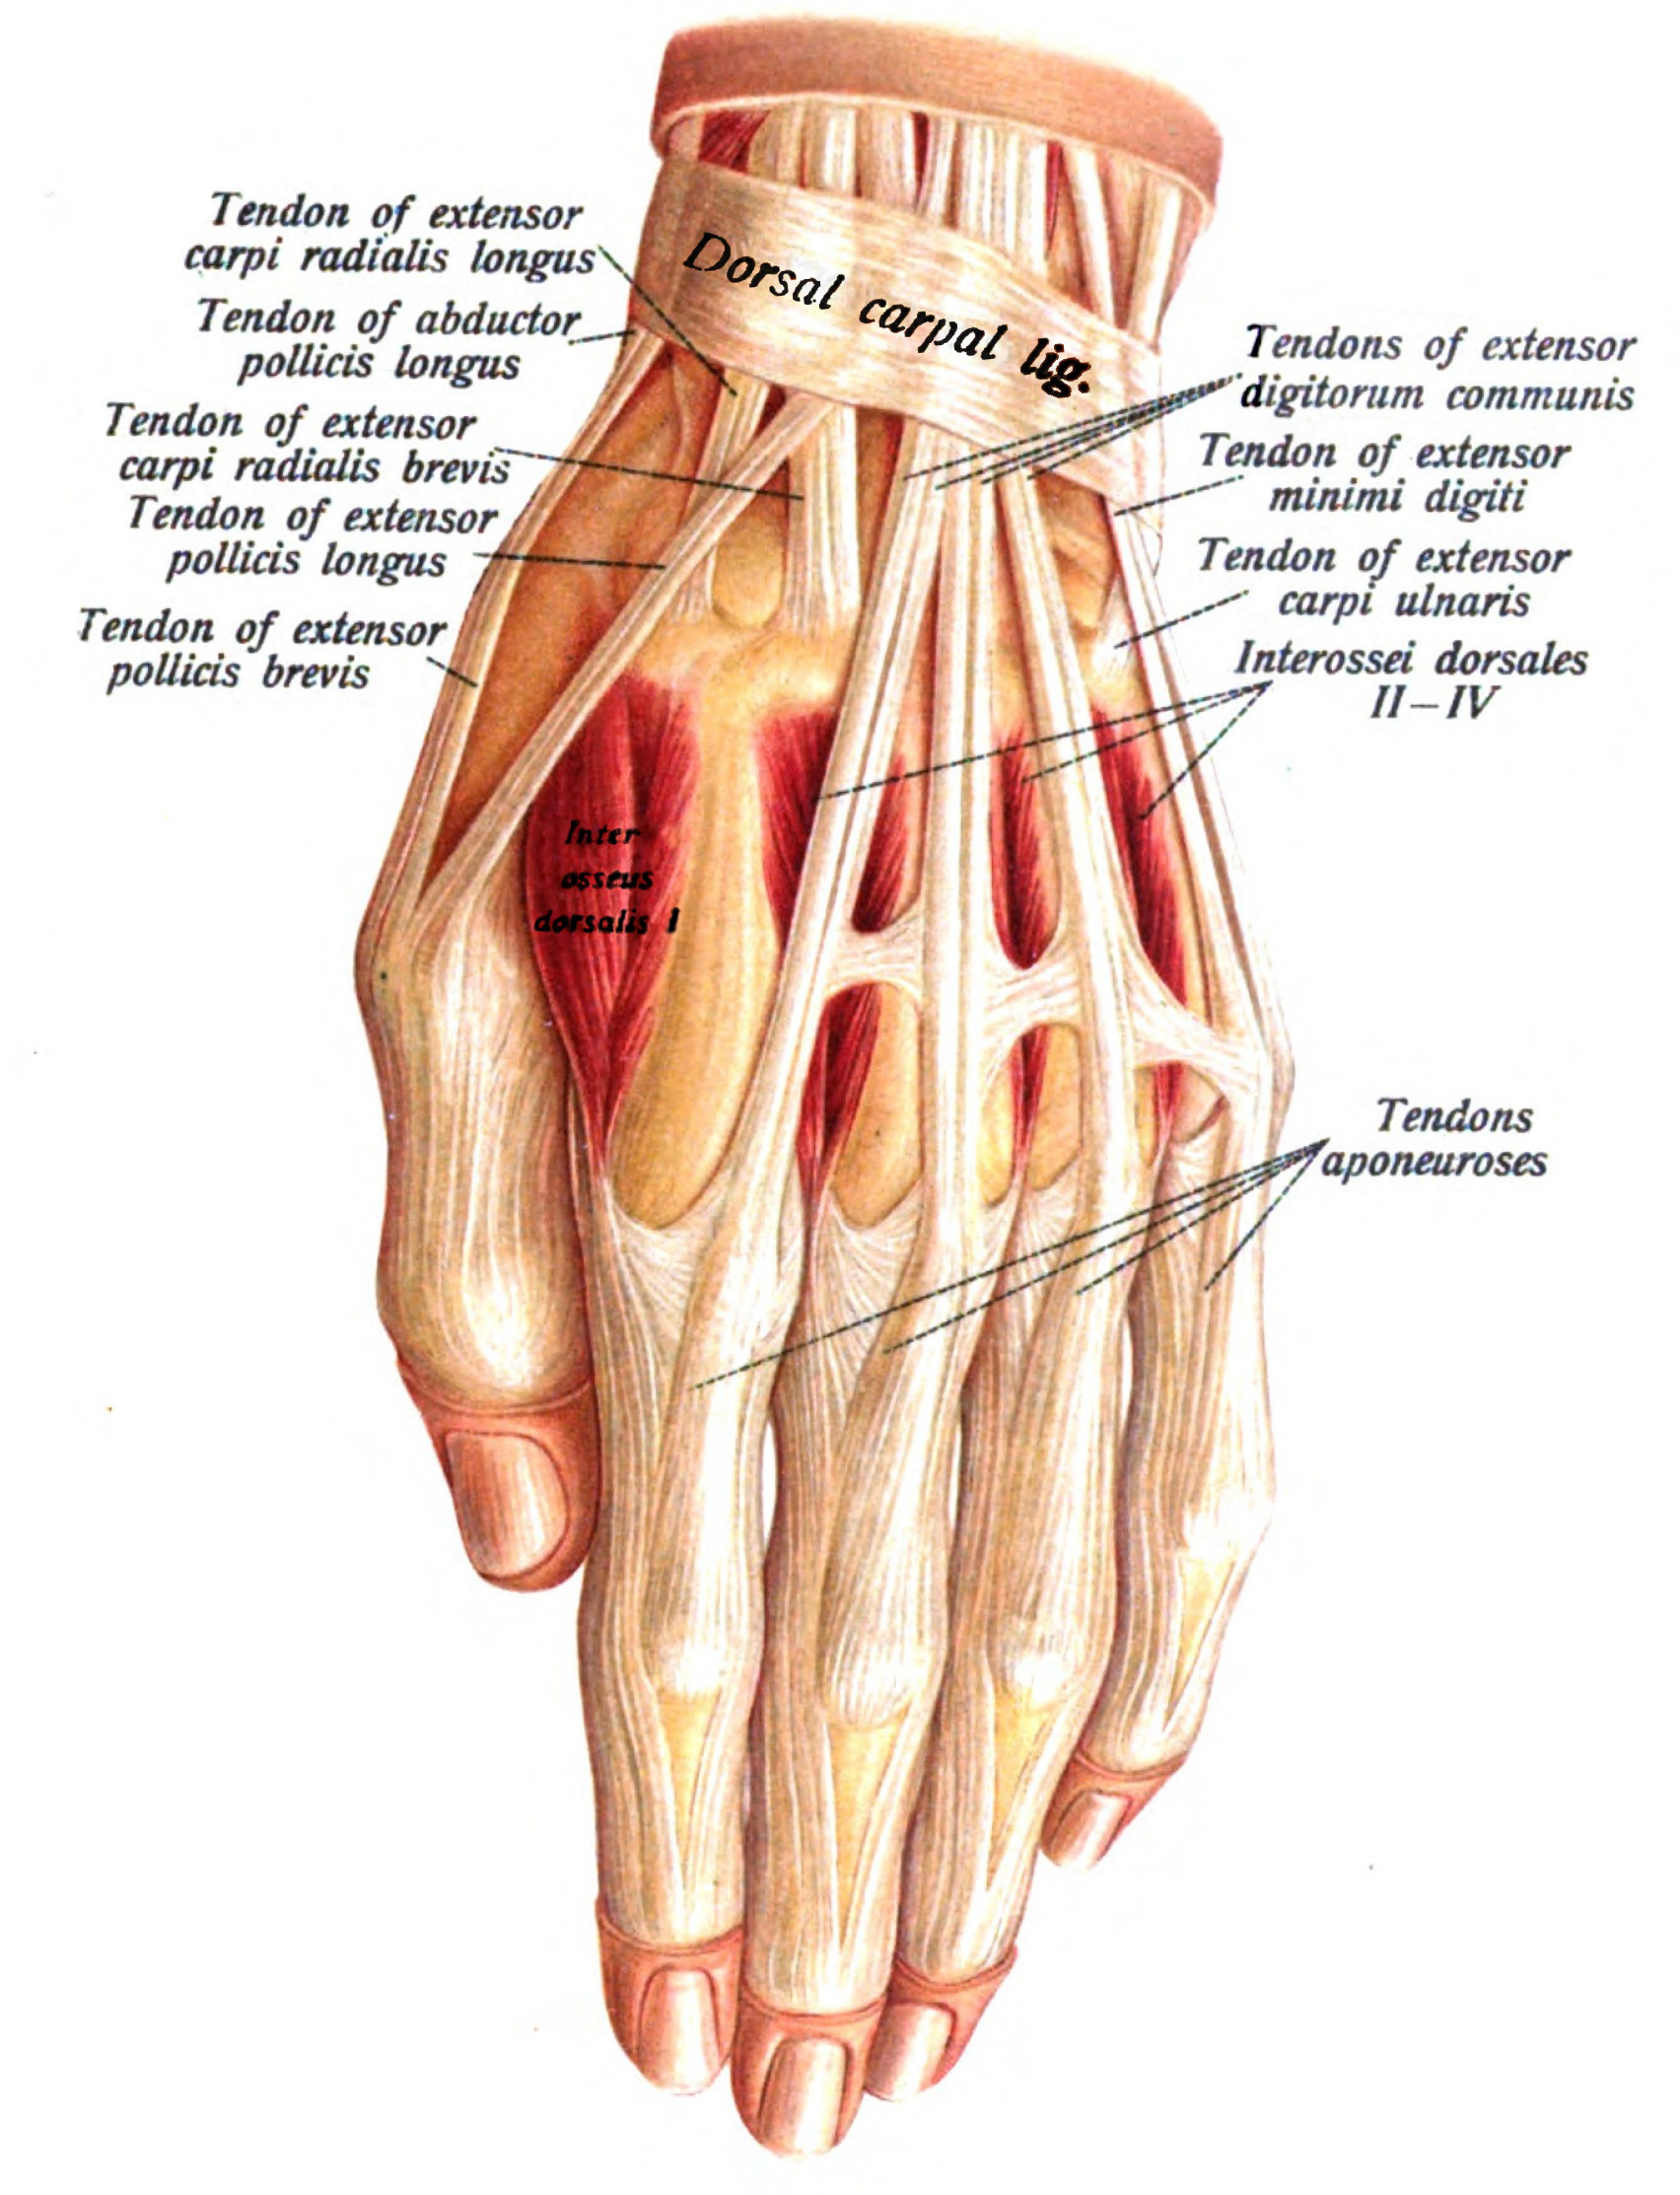 File:Hand anatomy.jpg - Wikipedia